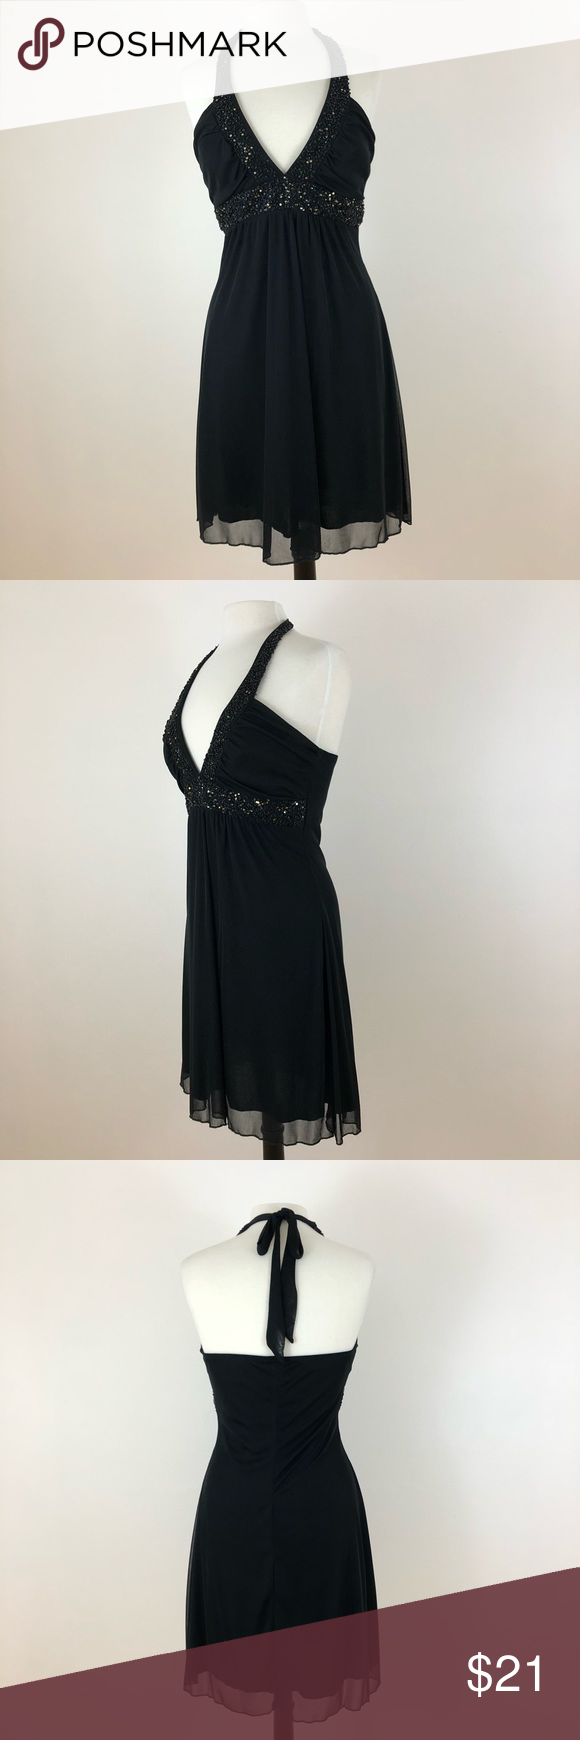 Black beaded halter dress size large black halter dress with beads